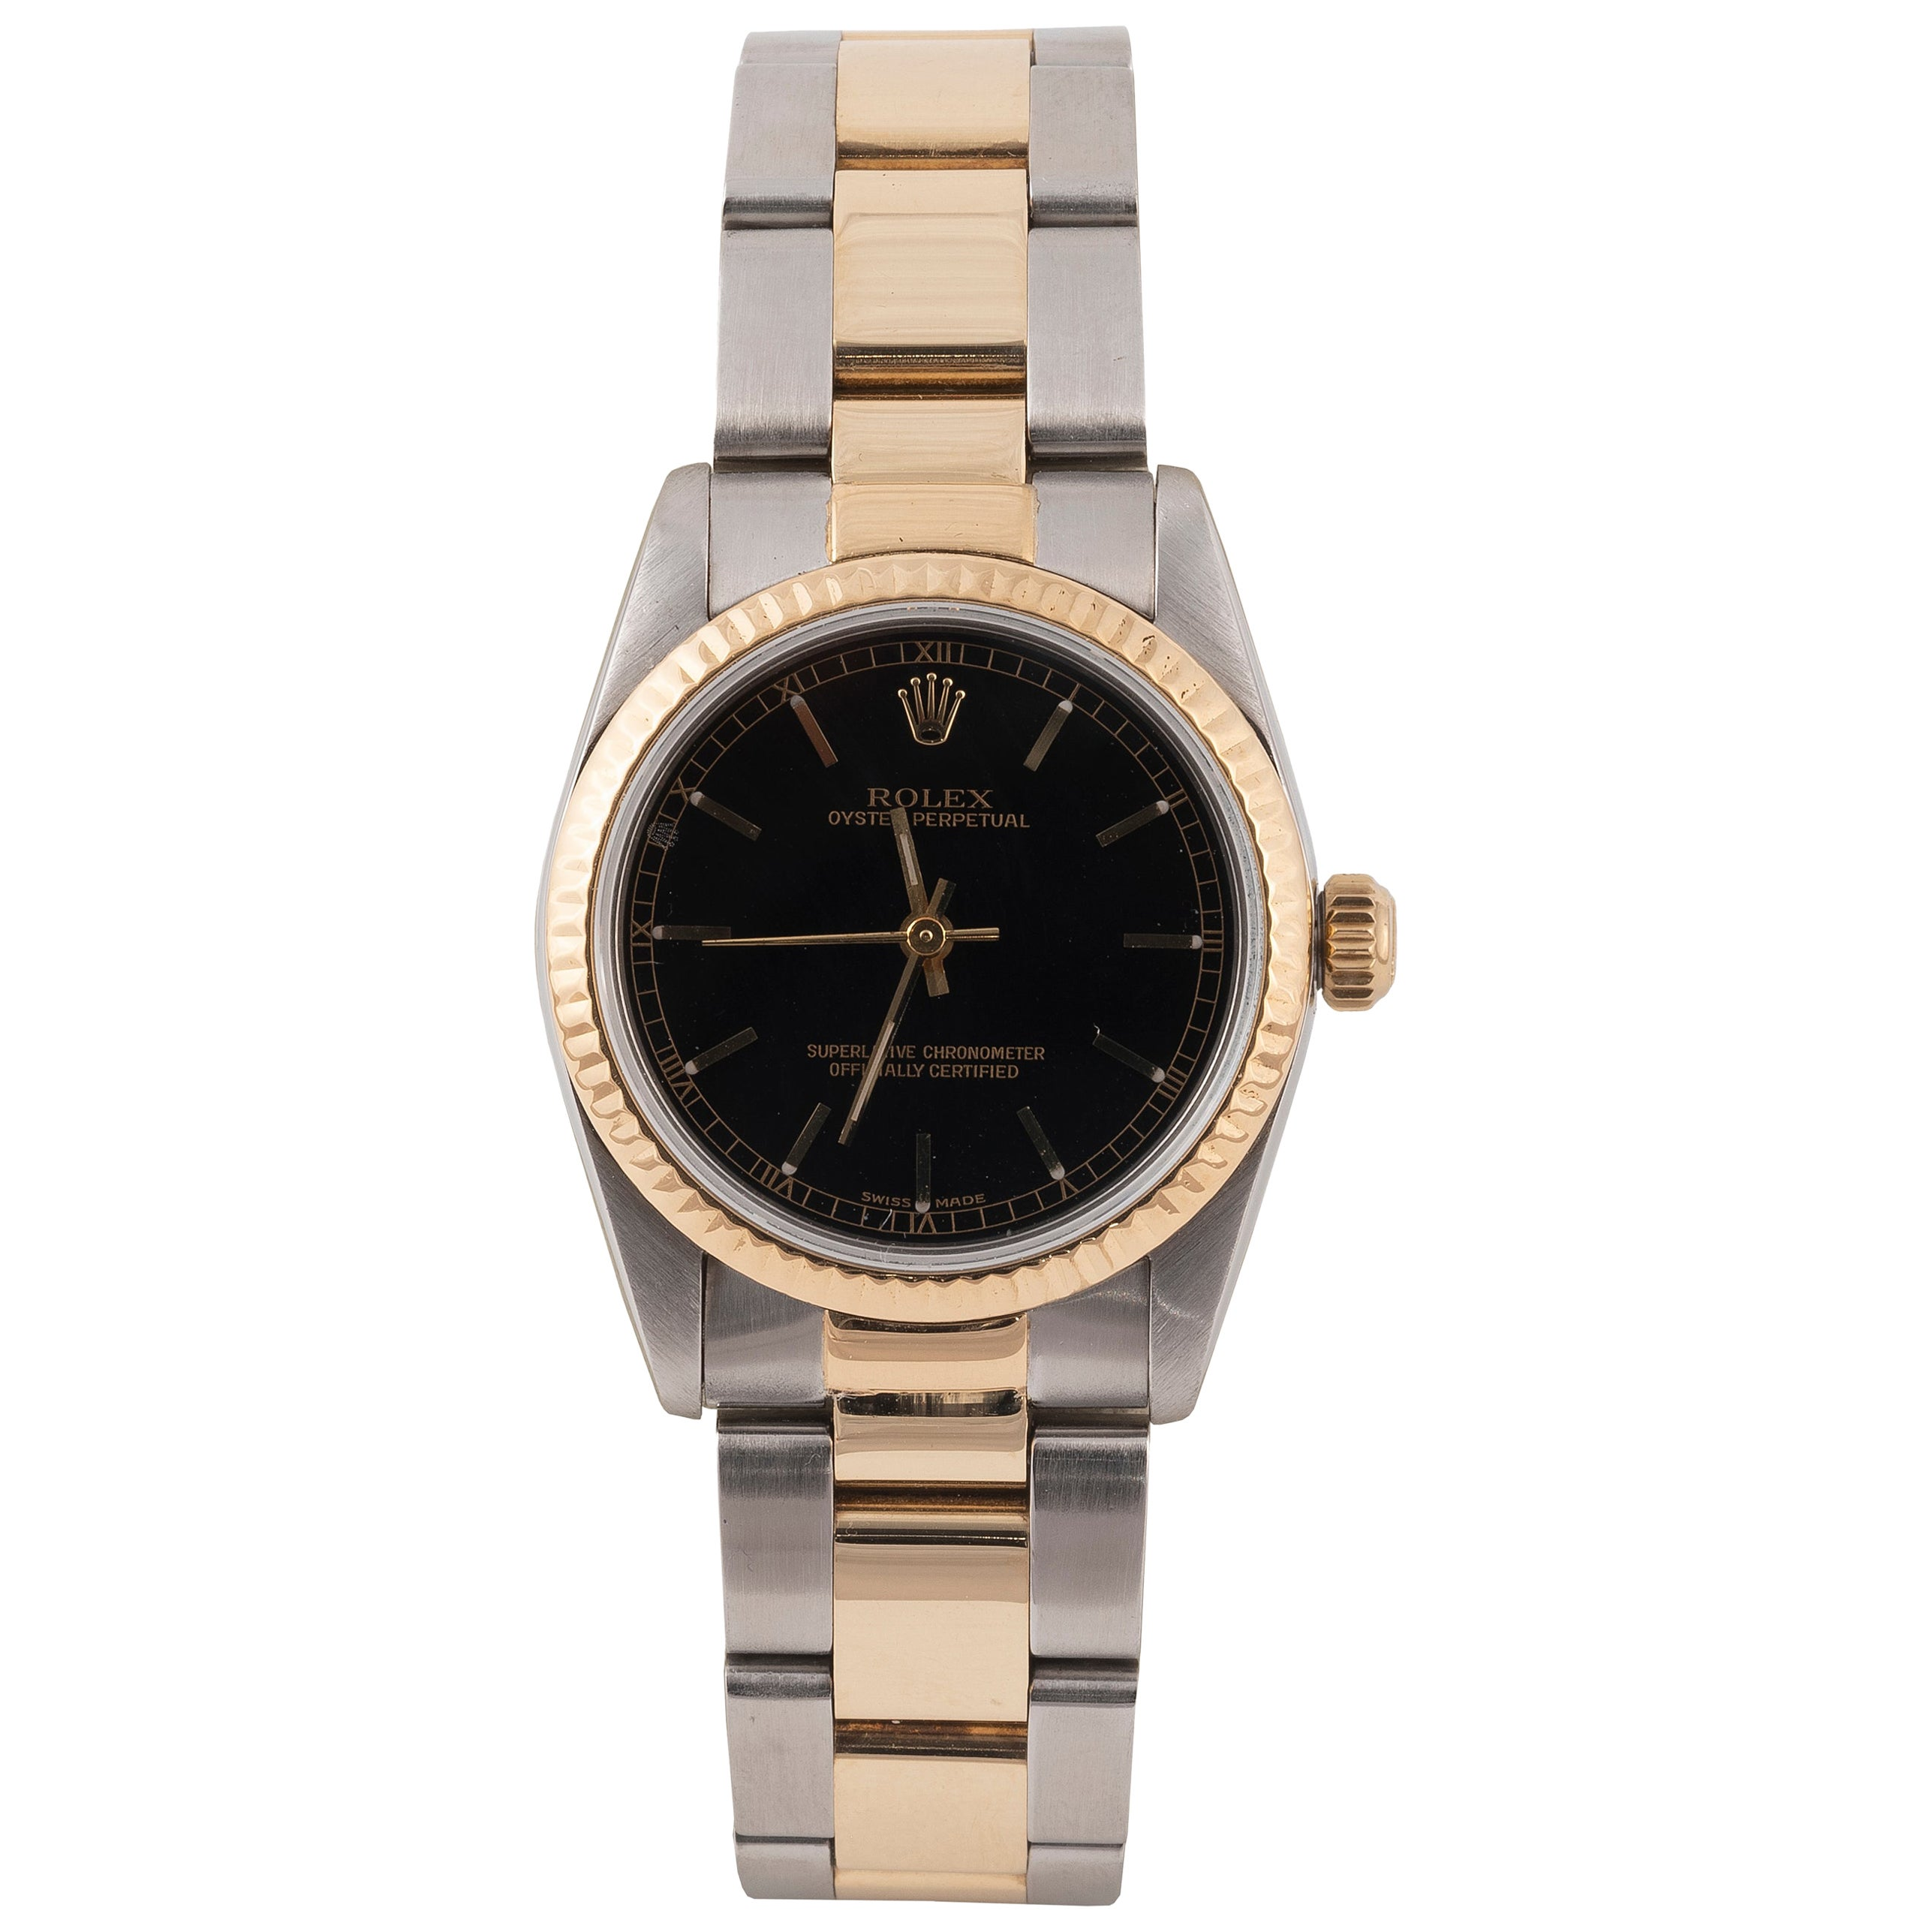 Rolex Oyster Perpetual Ref. 6751 Wristwatch Made in 1987